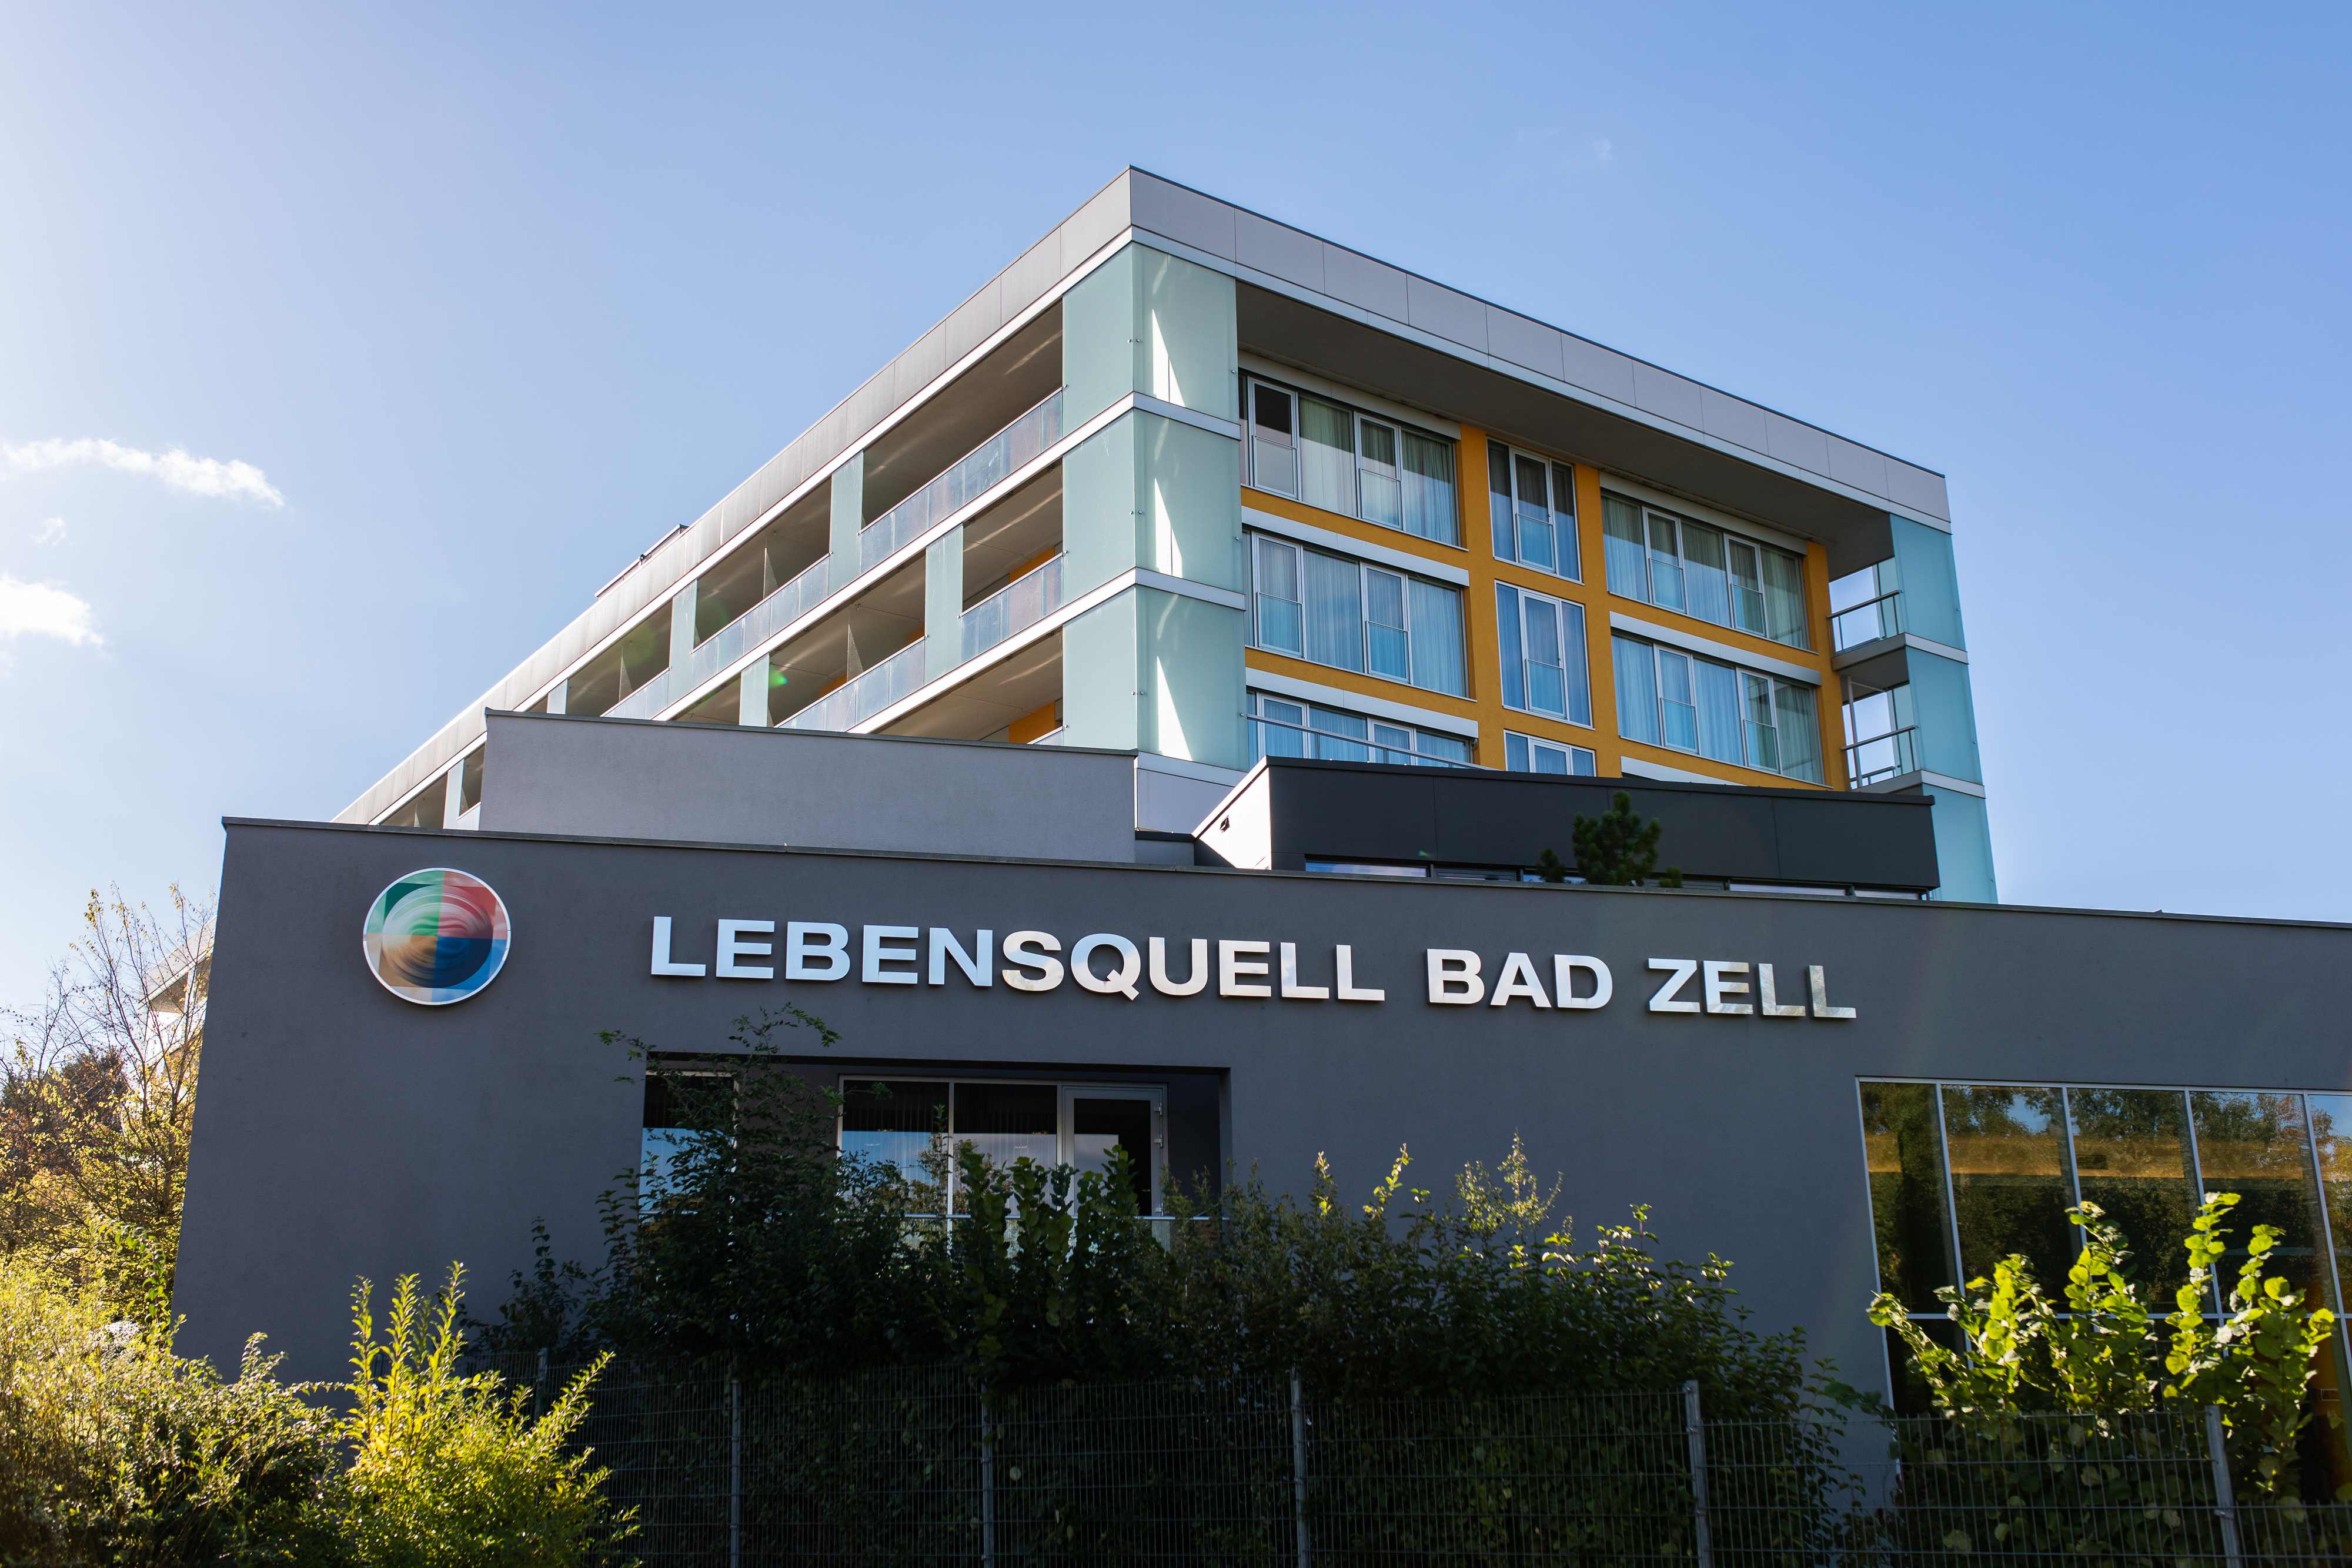 The Hotel Lebensquell health resort in Bad Zell, in Austria's Oberösterreich region, expanded and improve its facilities. ©ÖROK/APA-Fotoservice/Greindl